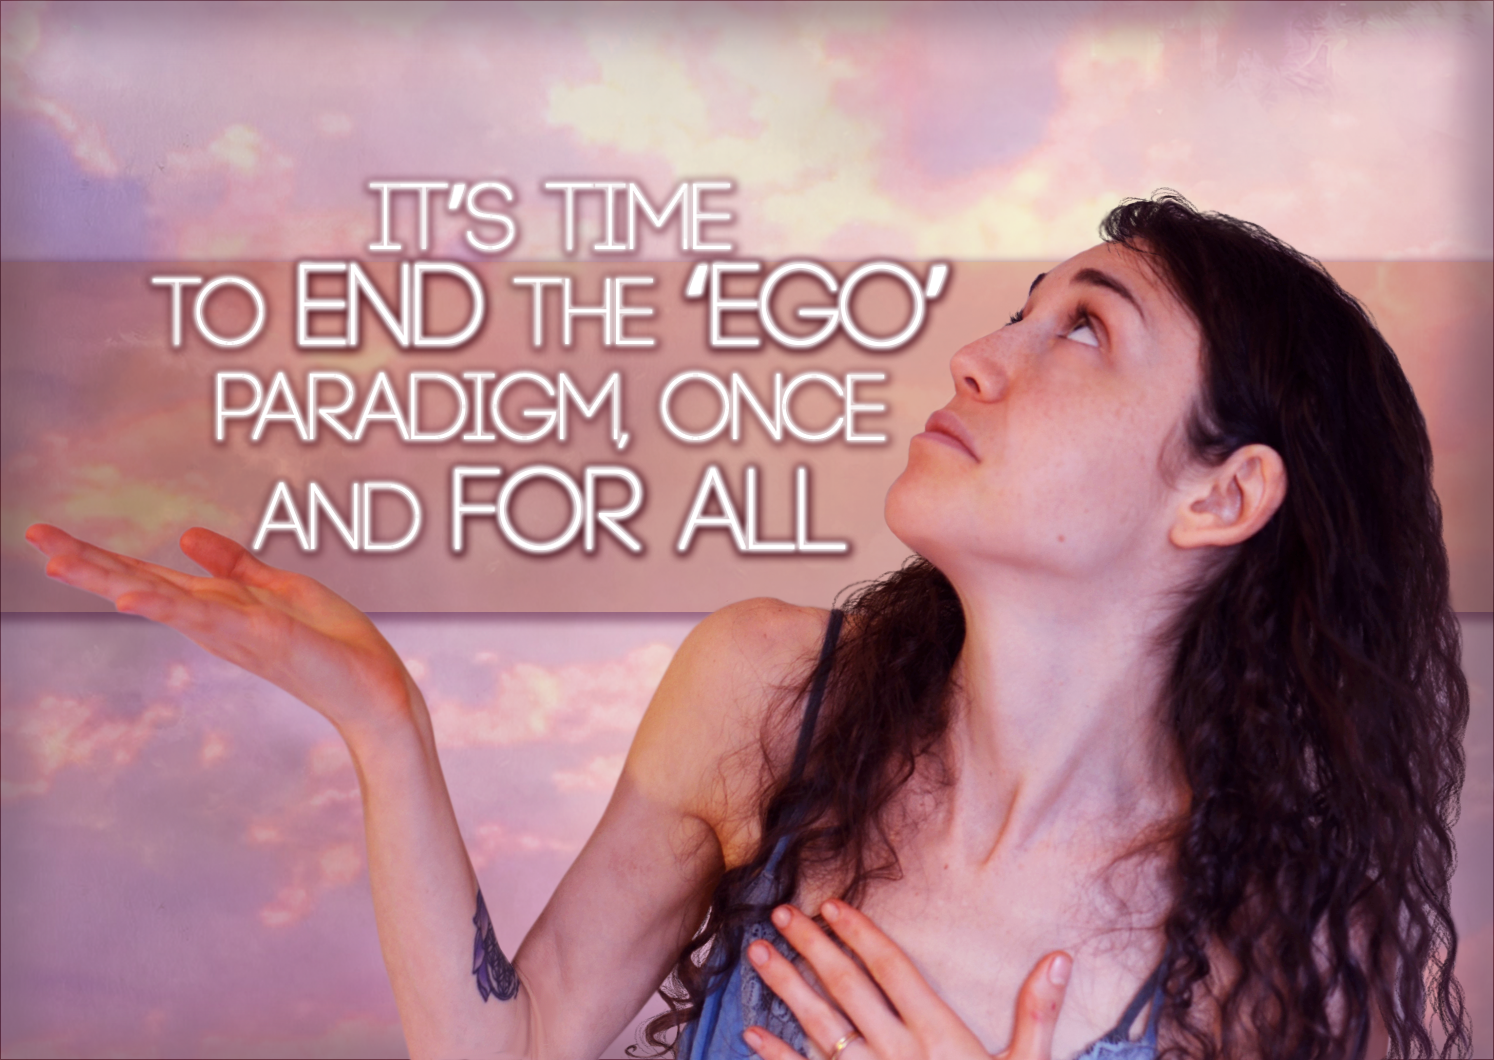 It's Time To END The 'Ego' Paradigm, Once And For All